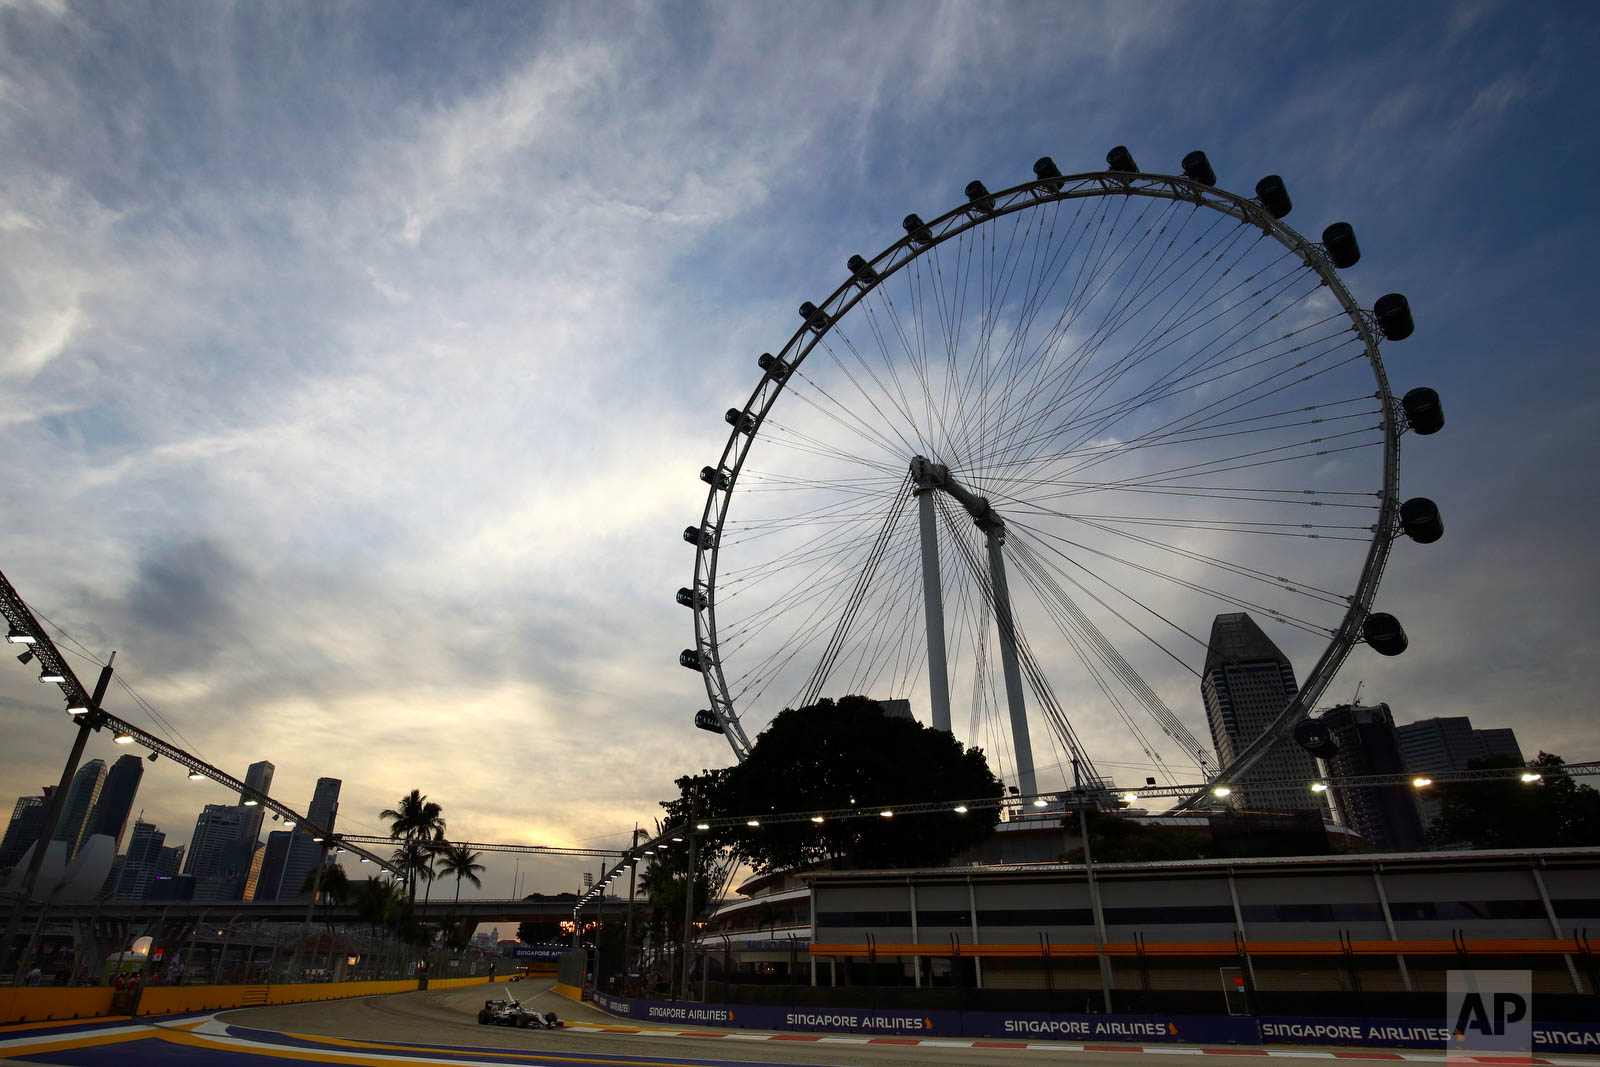 Mercedes driver Nico Rosberg of Germany steers his car during the third practice session for the Singapore Formula One Grand Prix on the Marina Bay City Circuit in Singapore, Saturday, Sept. 17, 2016. (AP Photo/Yong Teck Lim)